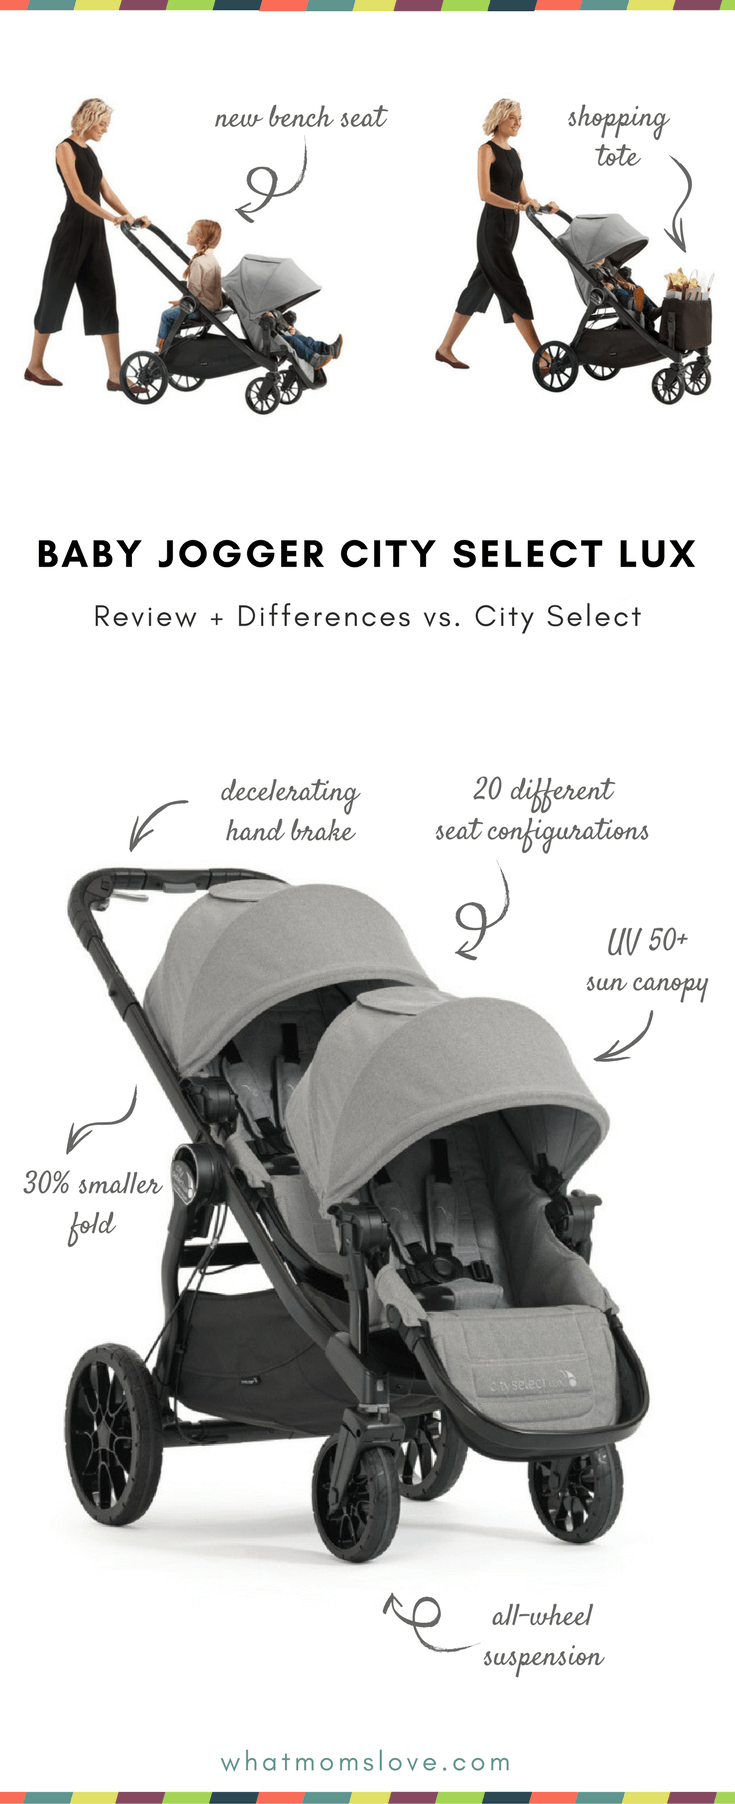 Baby Jogger City Select Lux Review The Super Adaptable Stroller